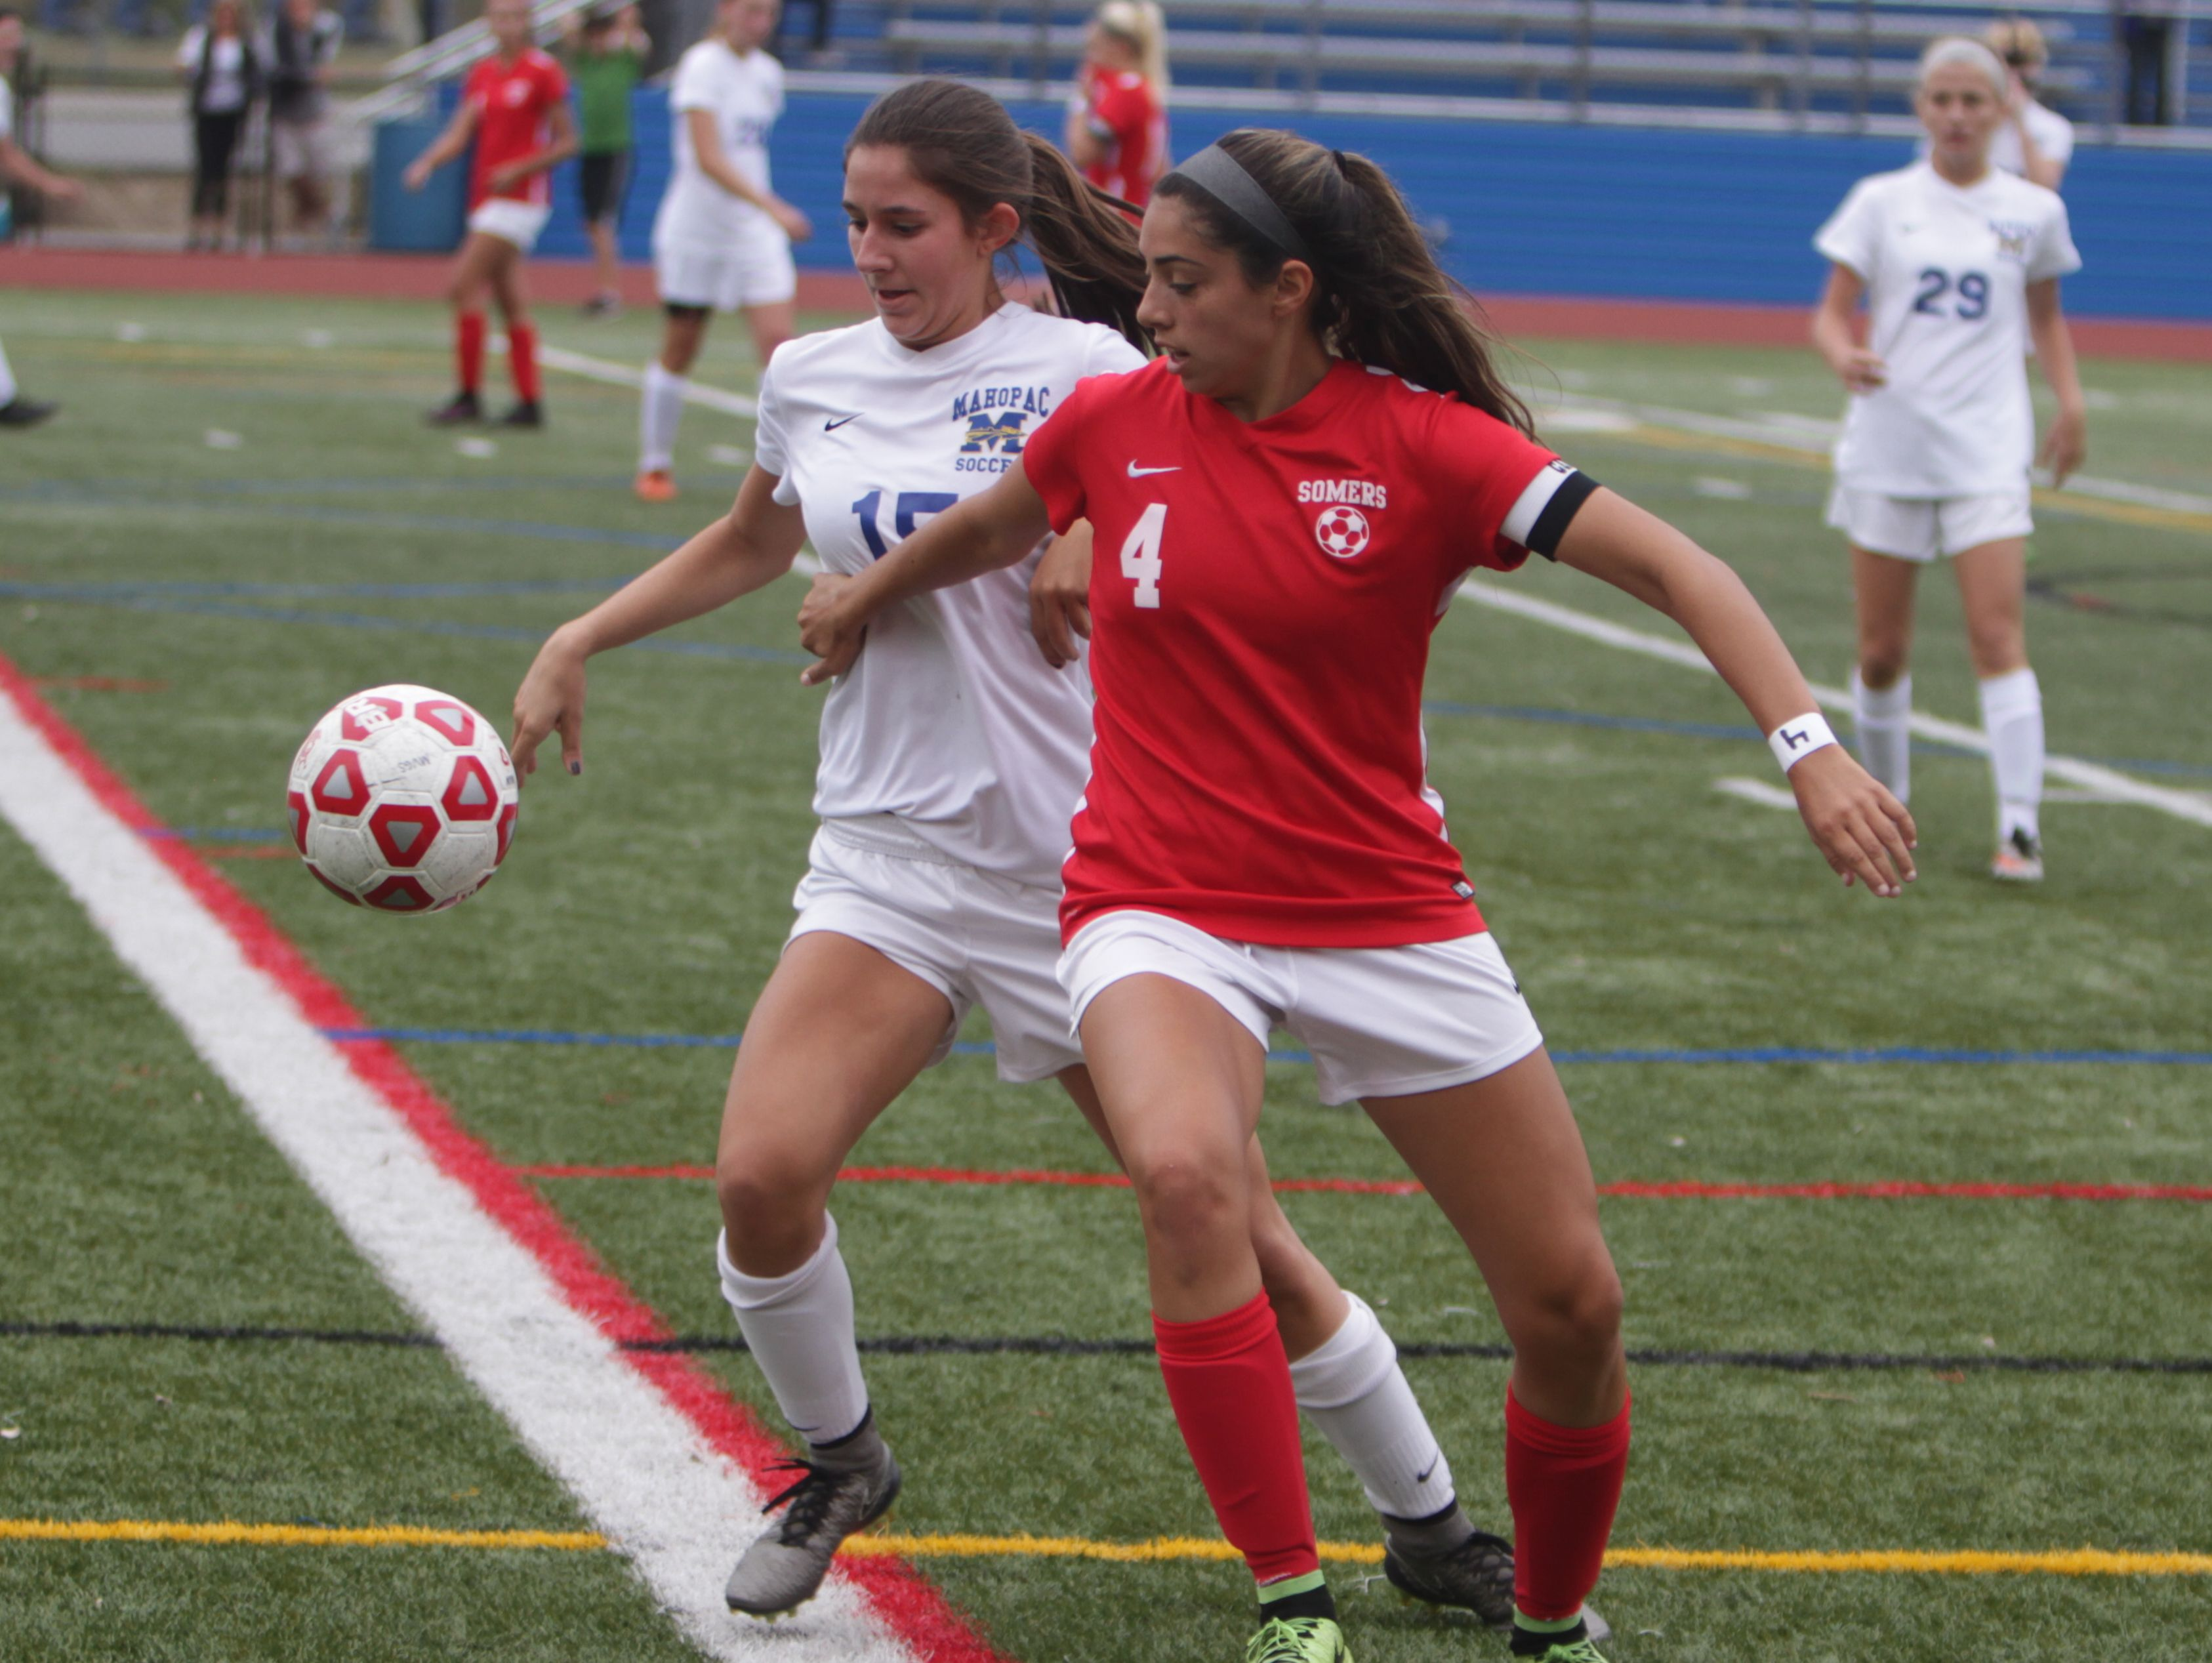 Mahopac's Zina McInerney (left) and Somers' Ciara Ostrander battle for possession of the ball during a Section 1 girls soccer game between Mahopac and Somers at Mahopac High School on Saturday, Oct. 8th, 2016. Somers won 2-0.